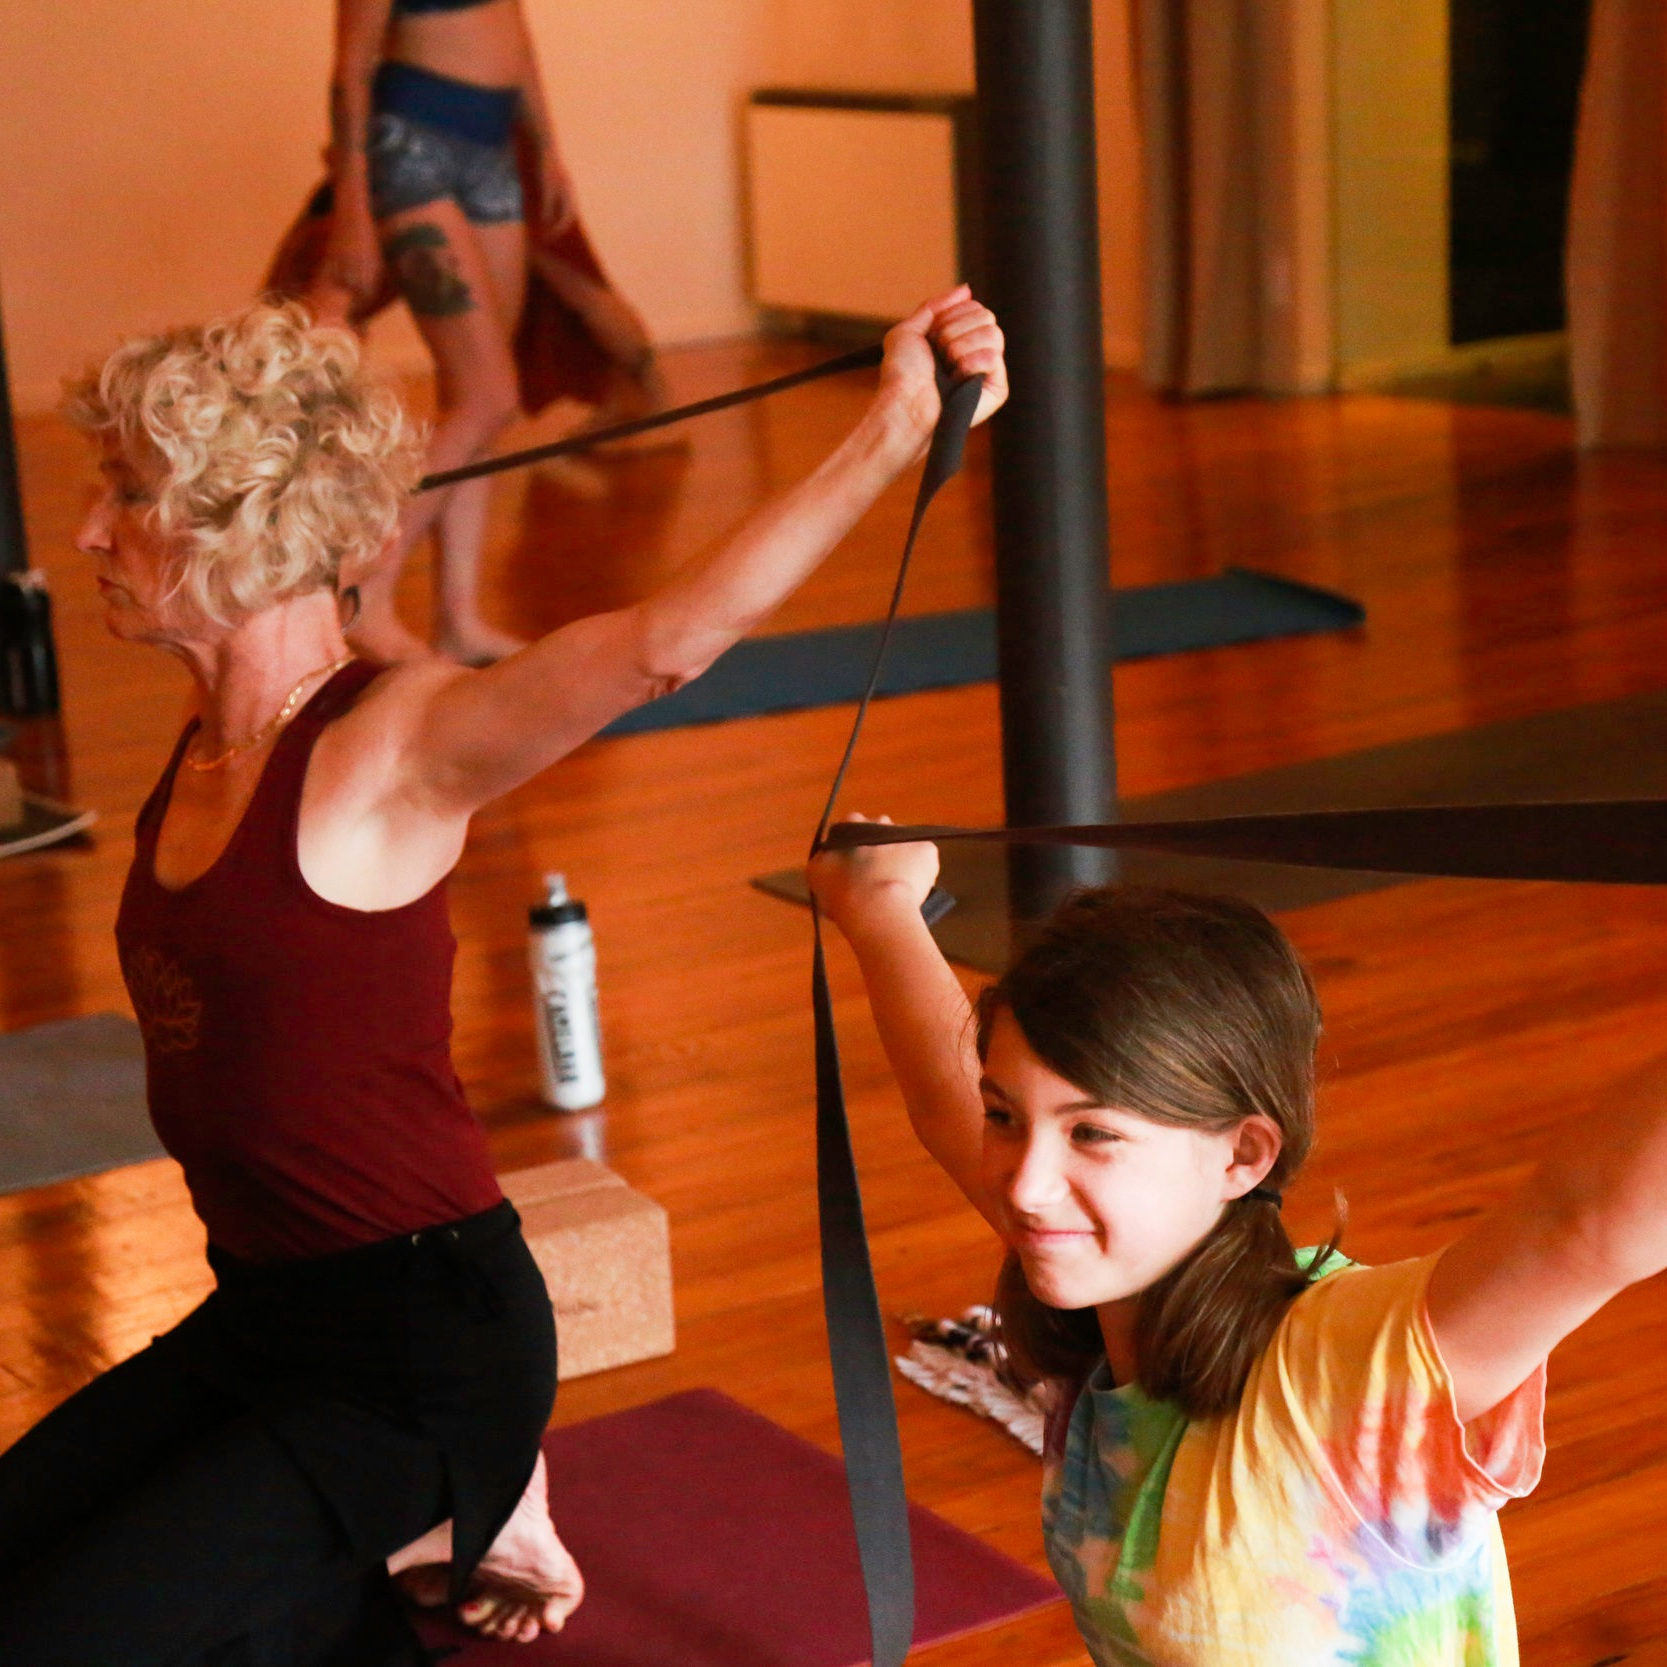 yoginis with straps